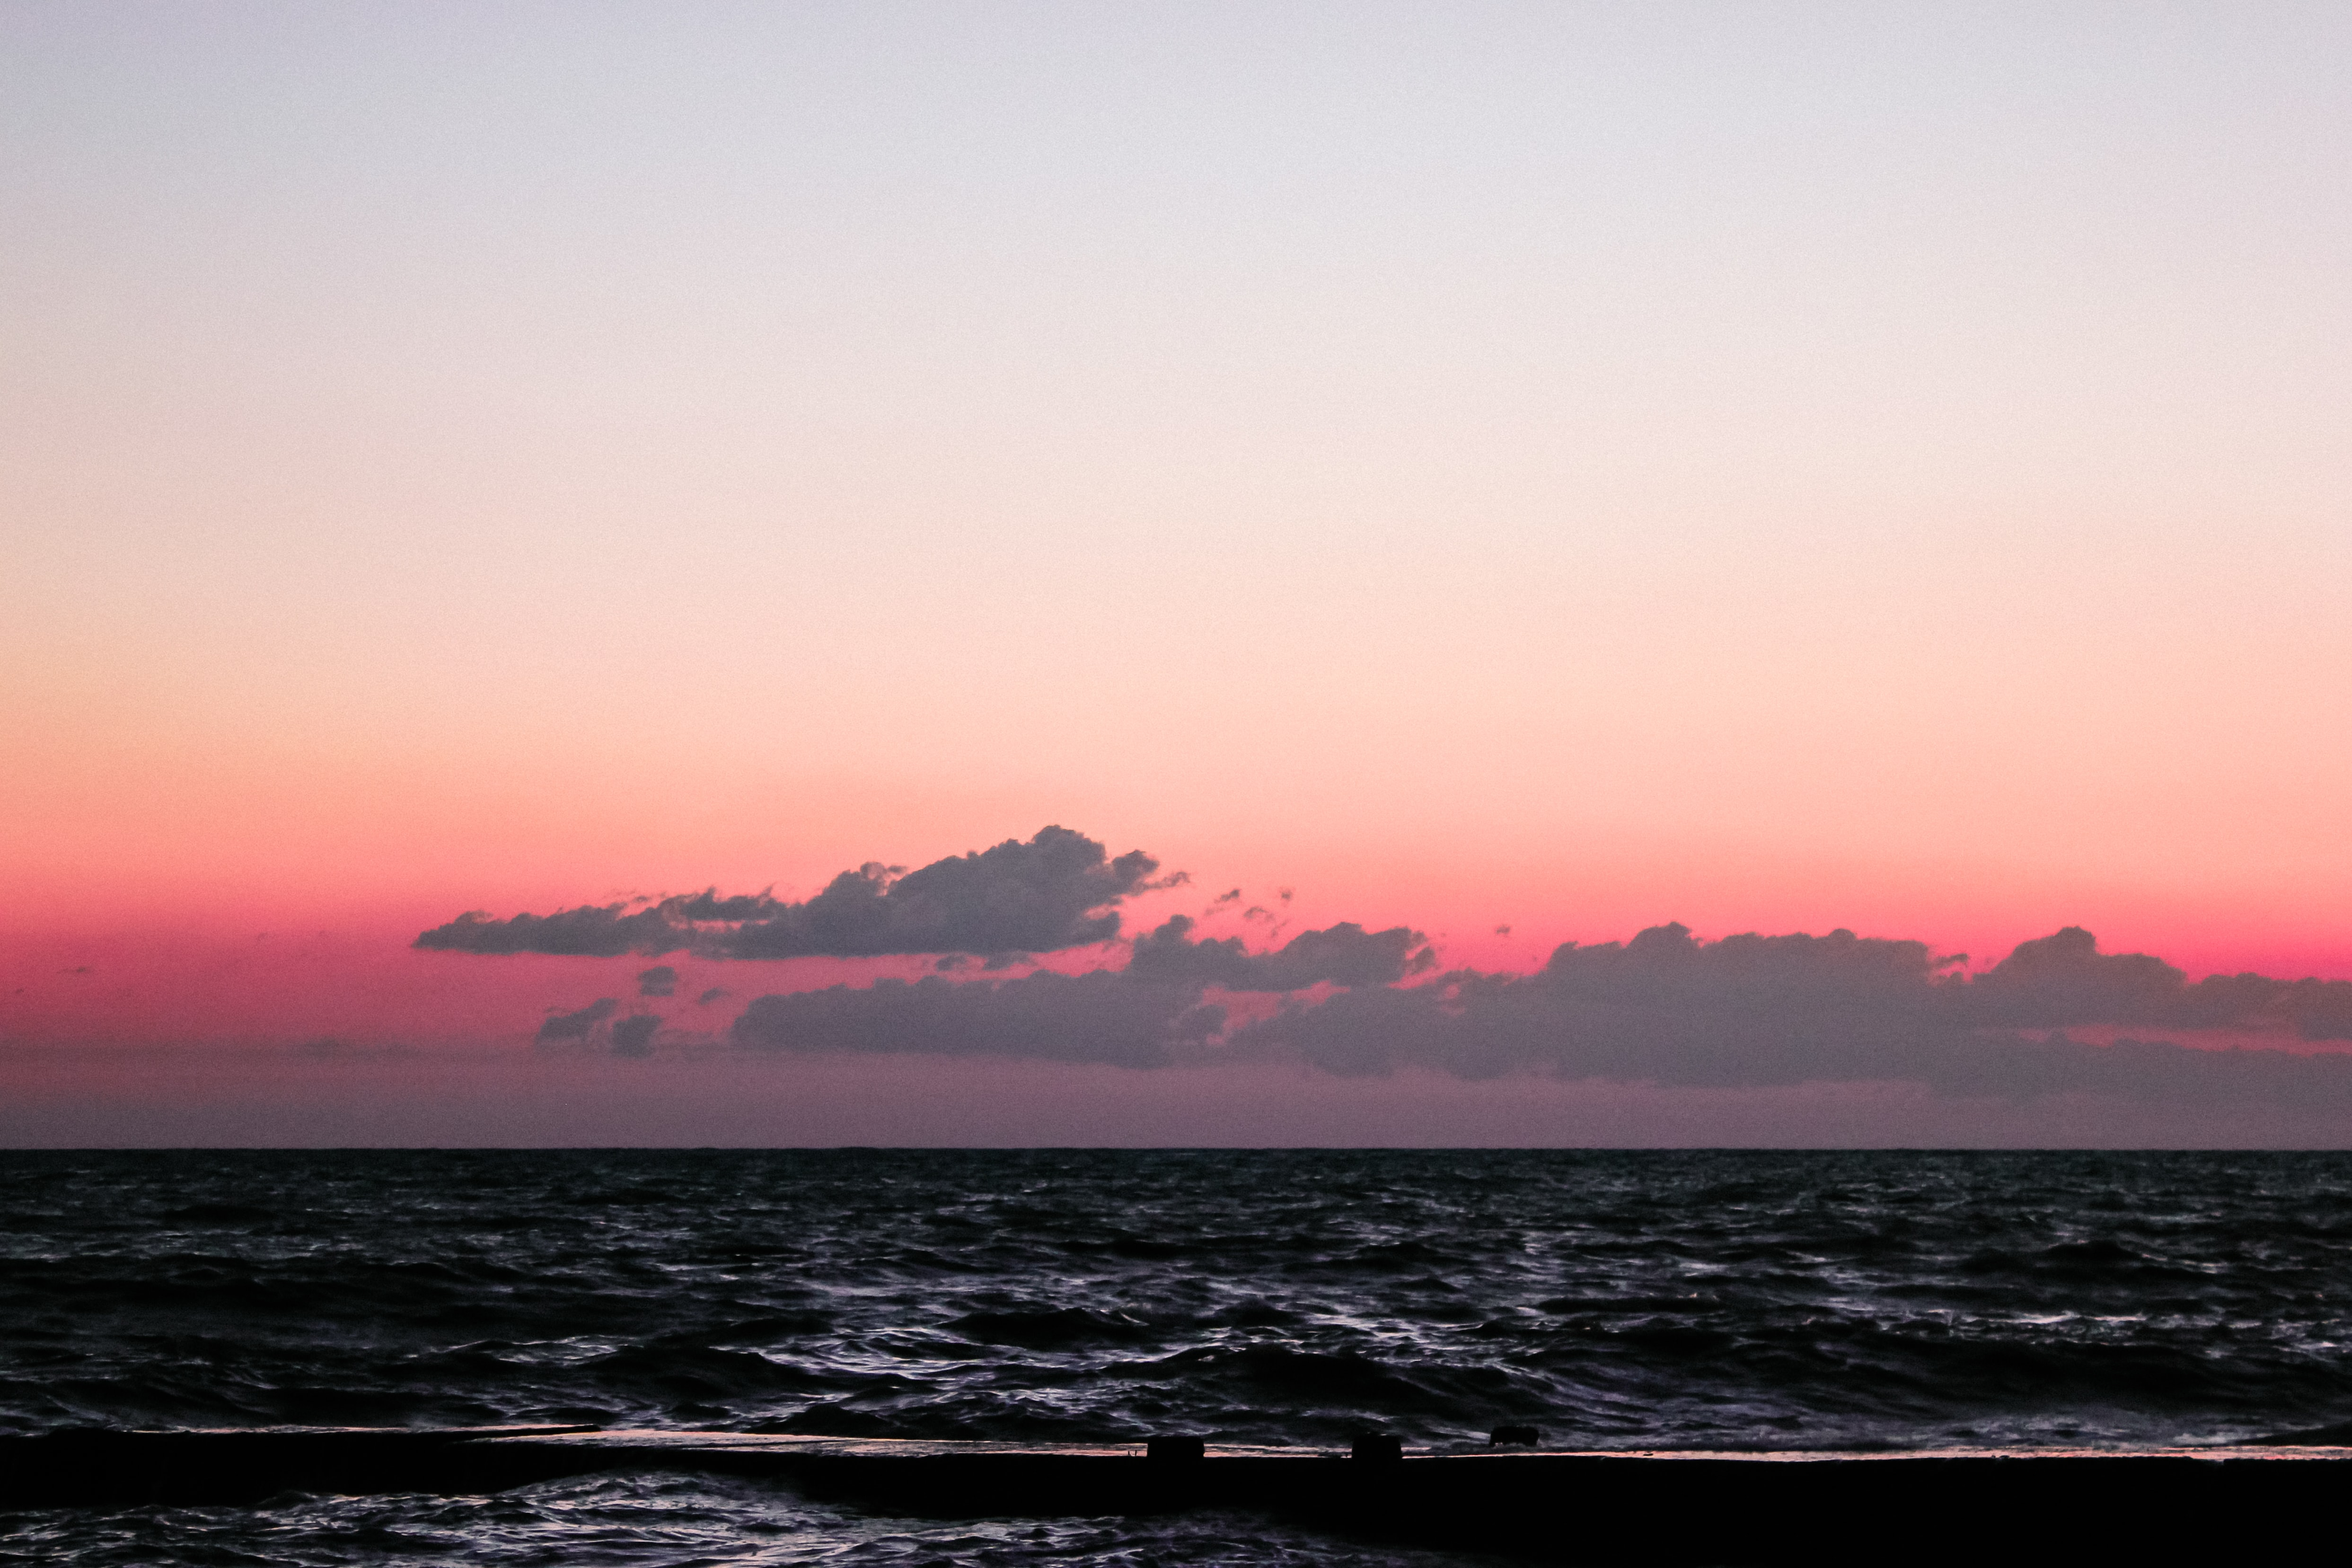 Seascape view from Adler, with red, cloudy sky that becomes clear and pale